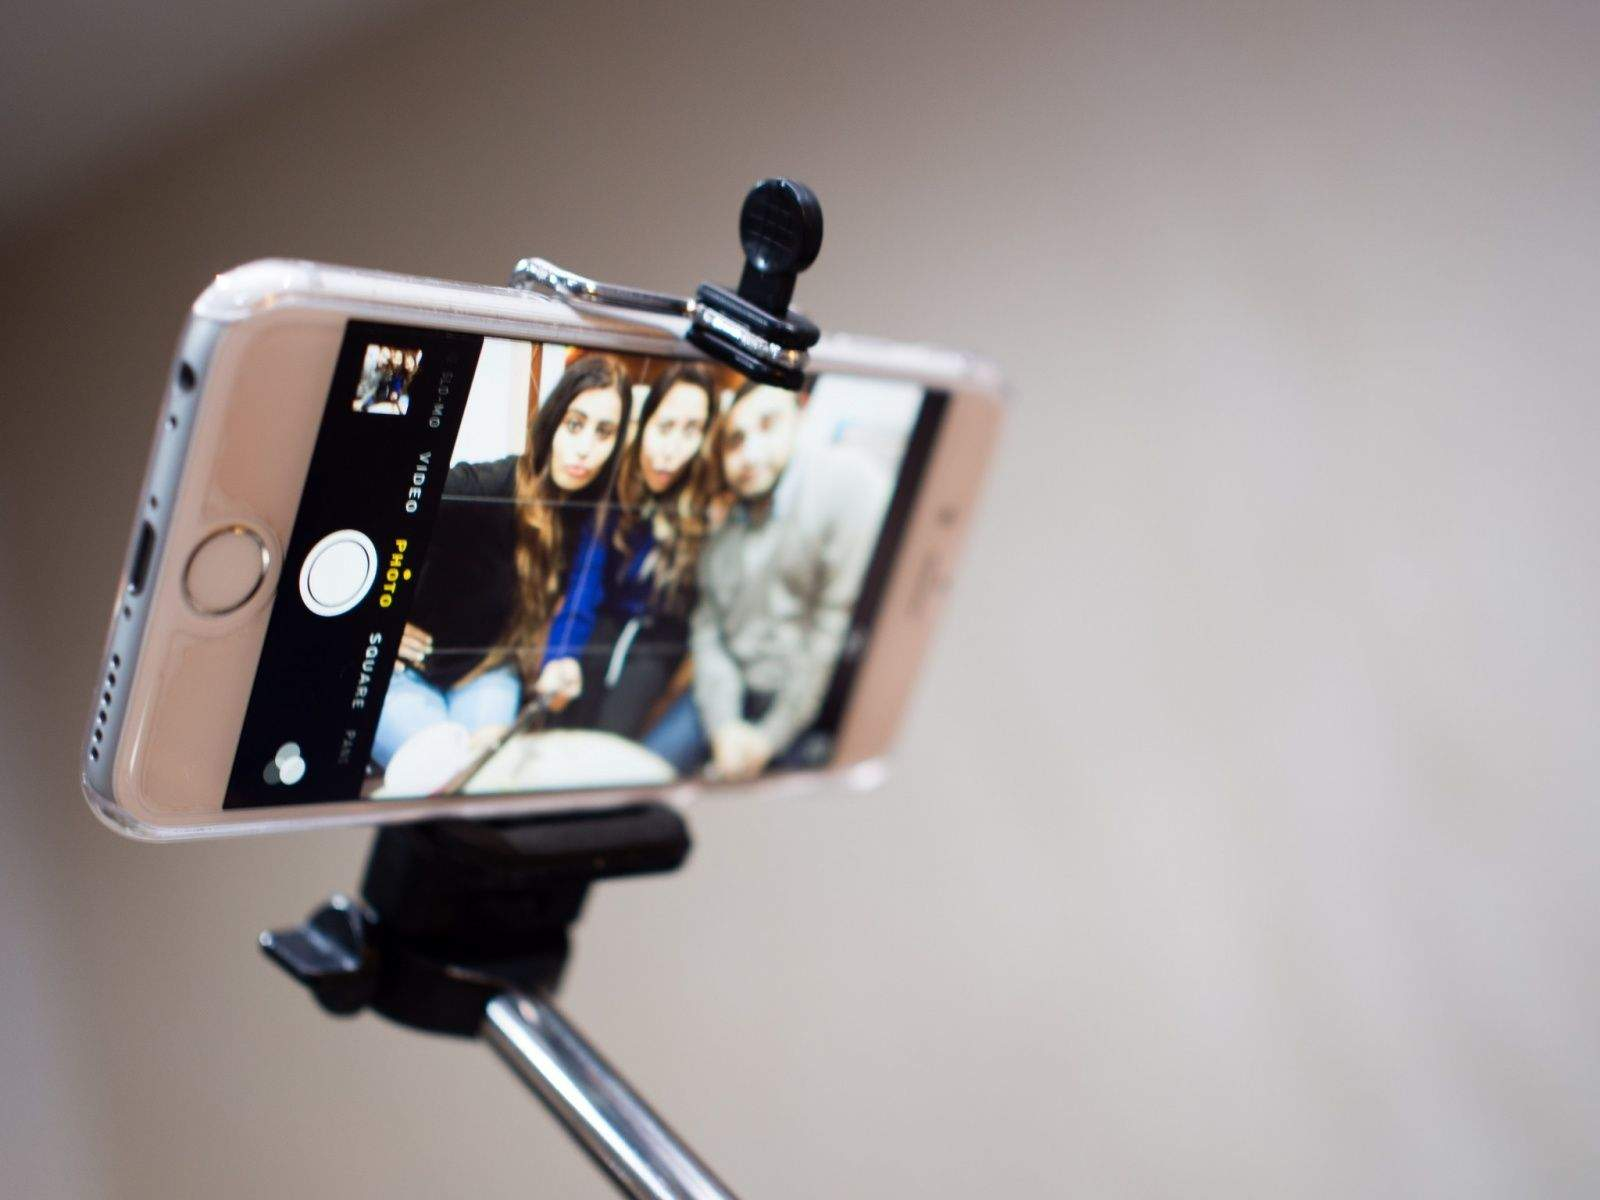 Selfie sticks aren't welcome at WWDC. Photo: R4vi/Flickr